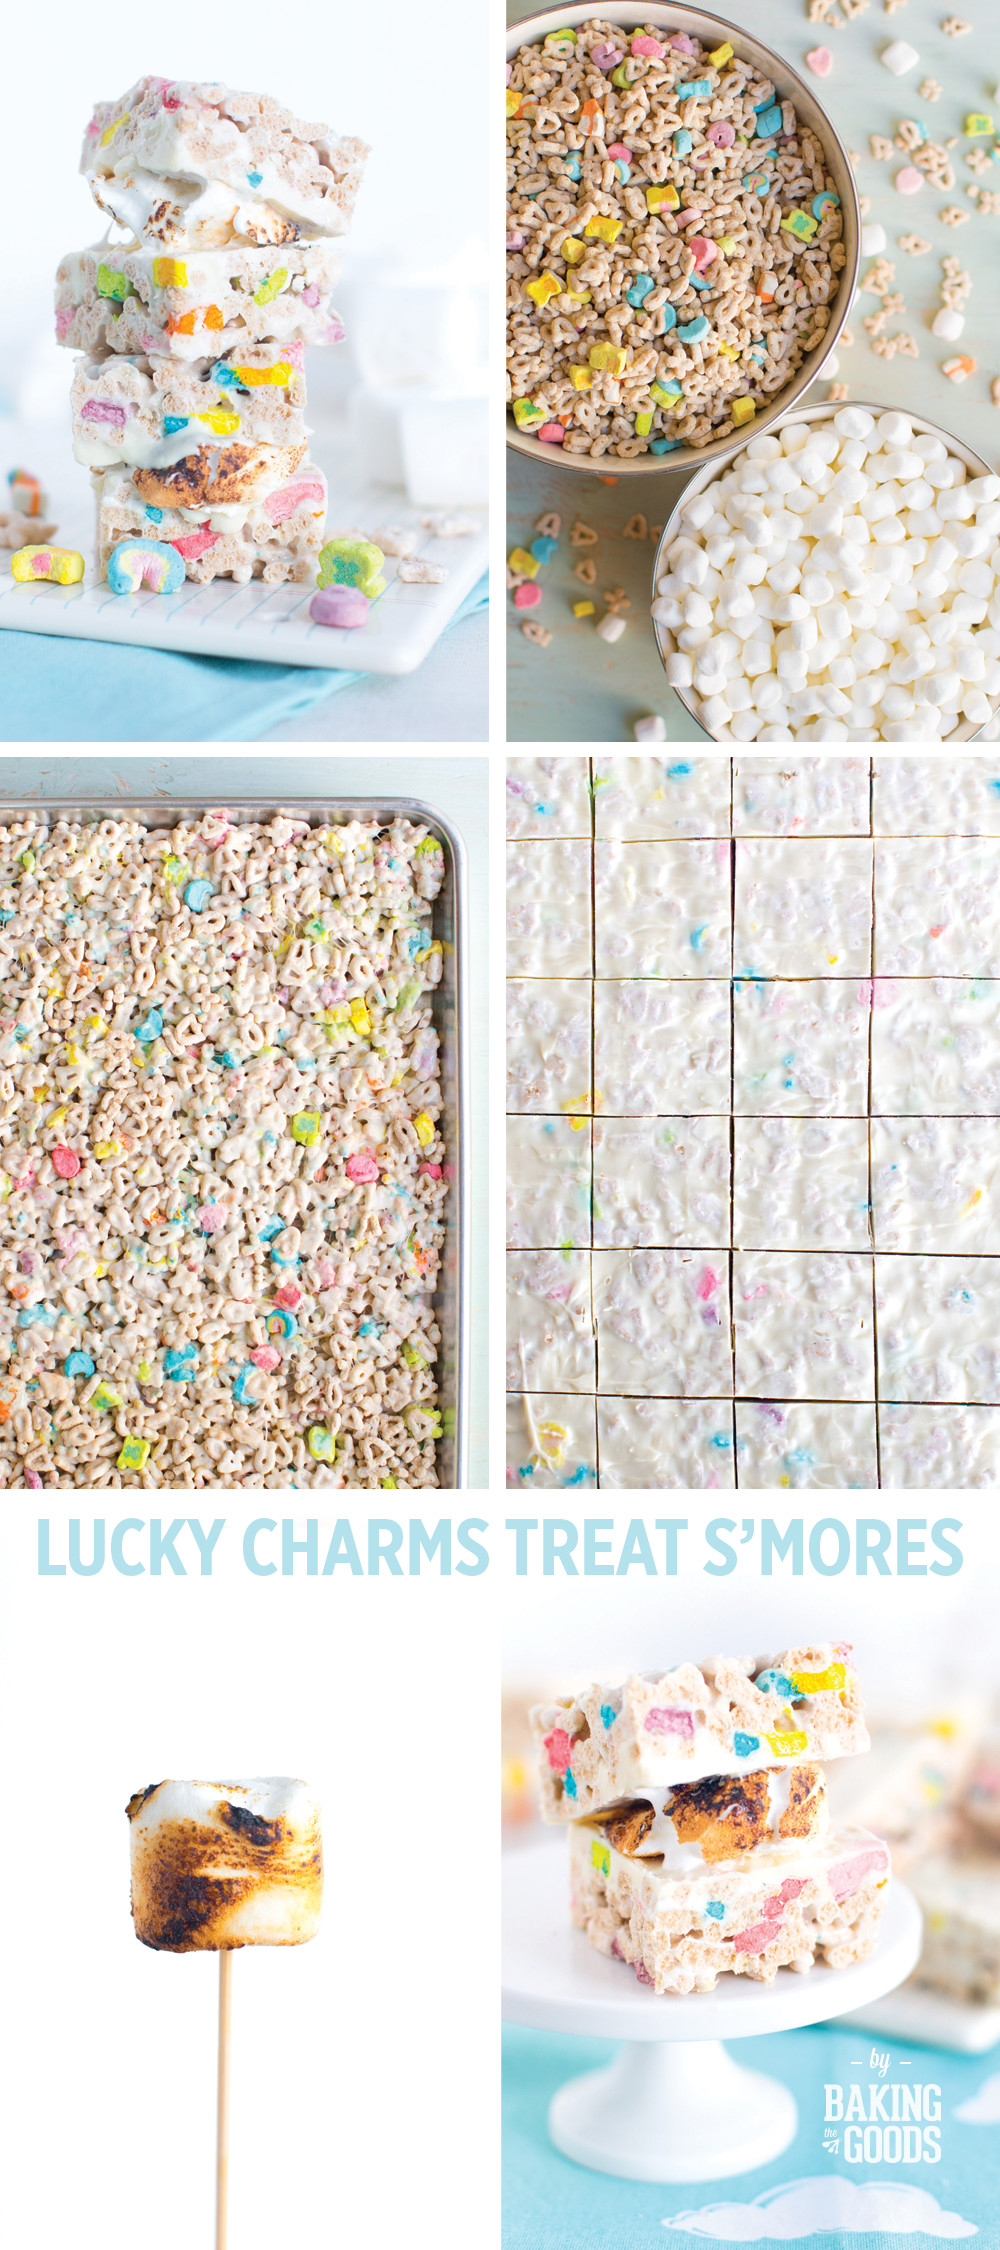 Lucky Charms Treat S'mores, step-by-step